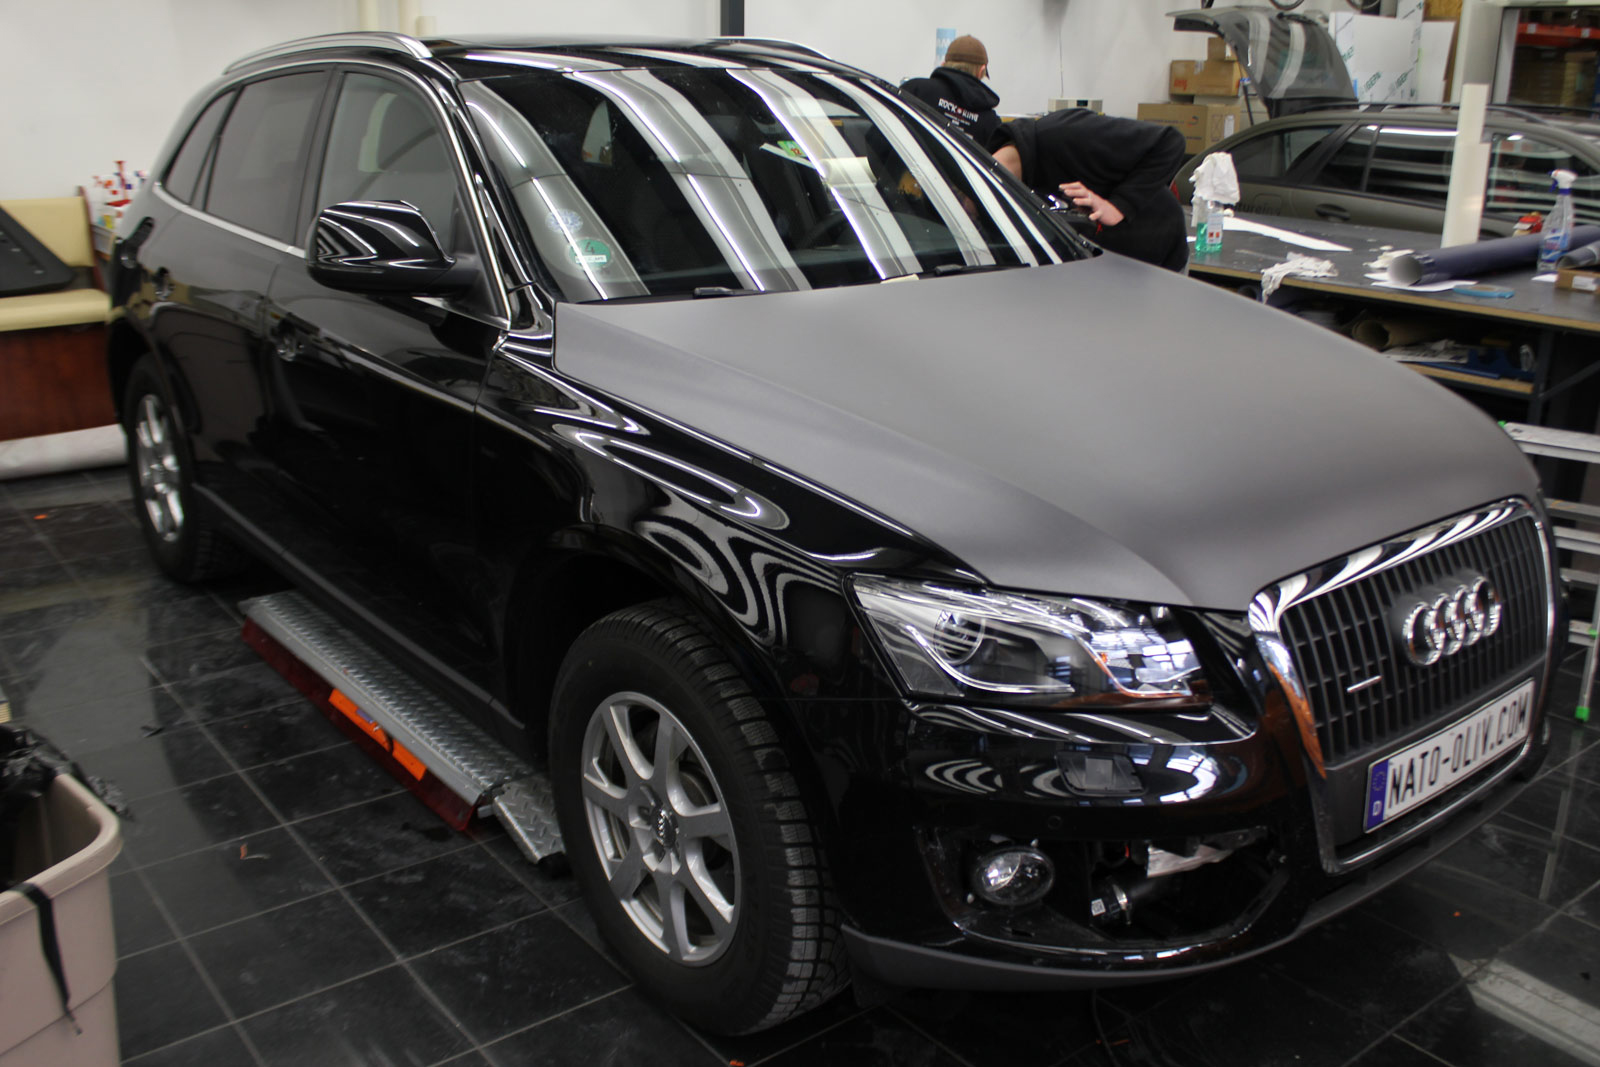 Audi_Q5_Folierung_Anthrazit_Matt_Metallic_22